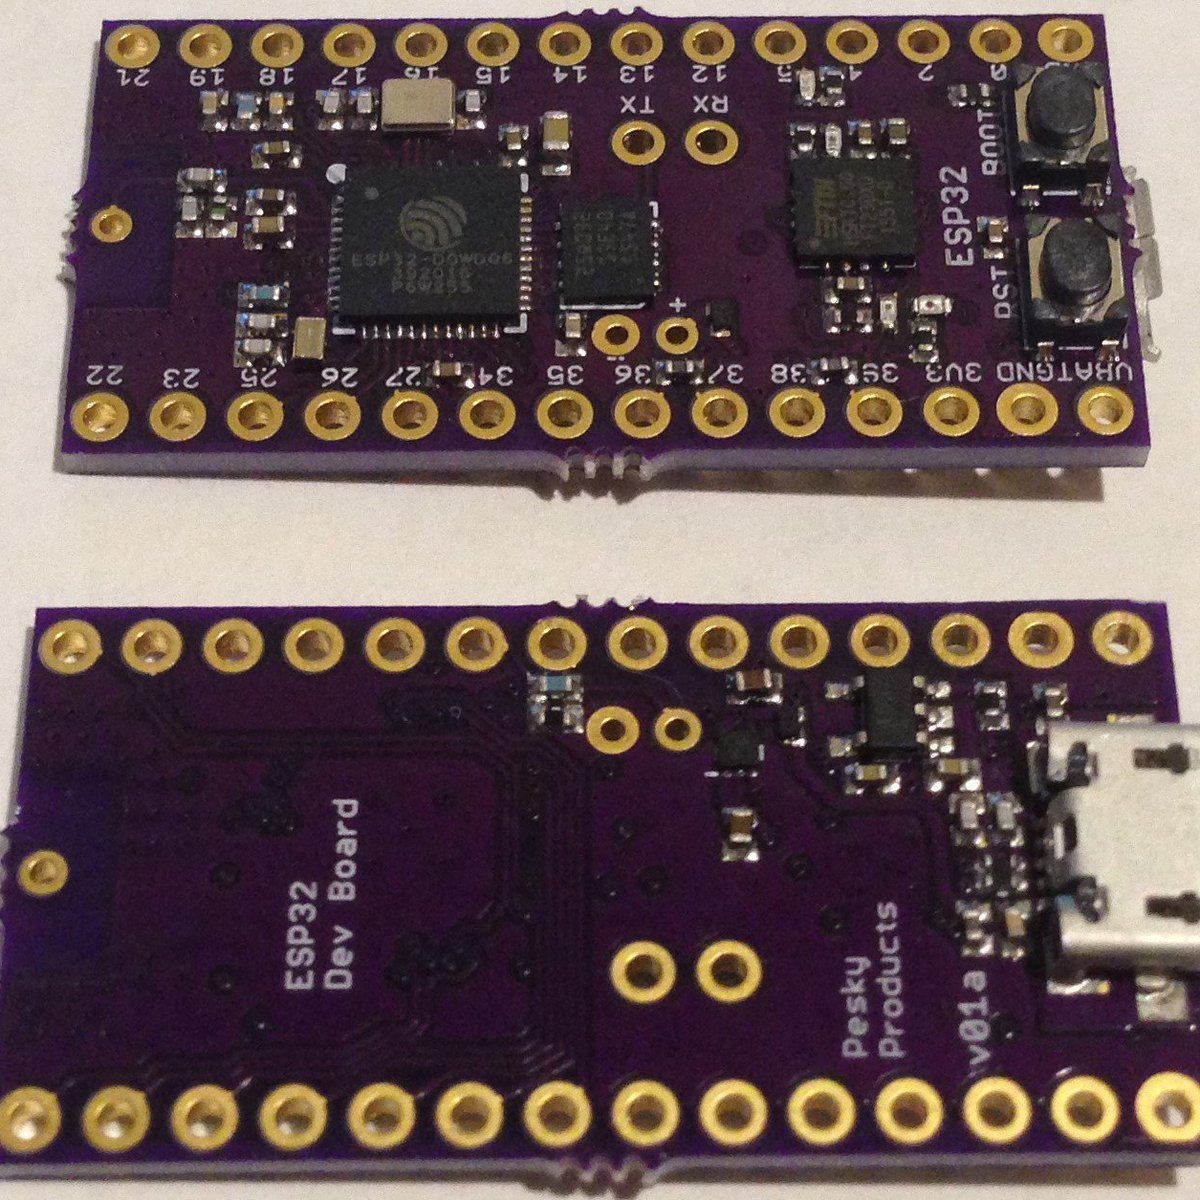 Smallest ESP32 Development Board from Pesky Products on Tindie